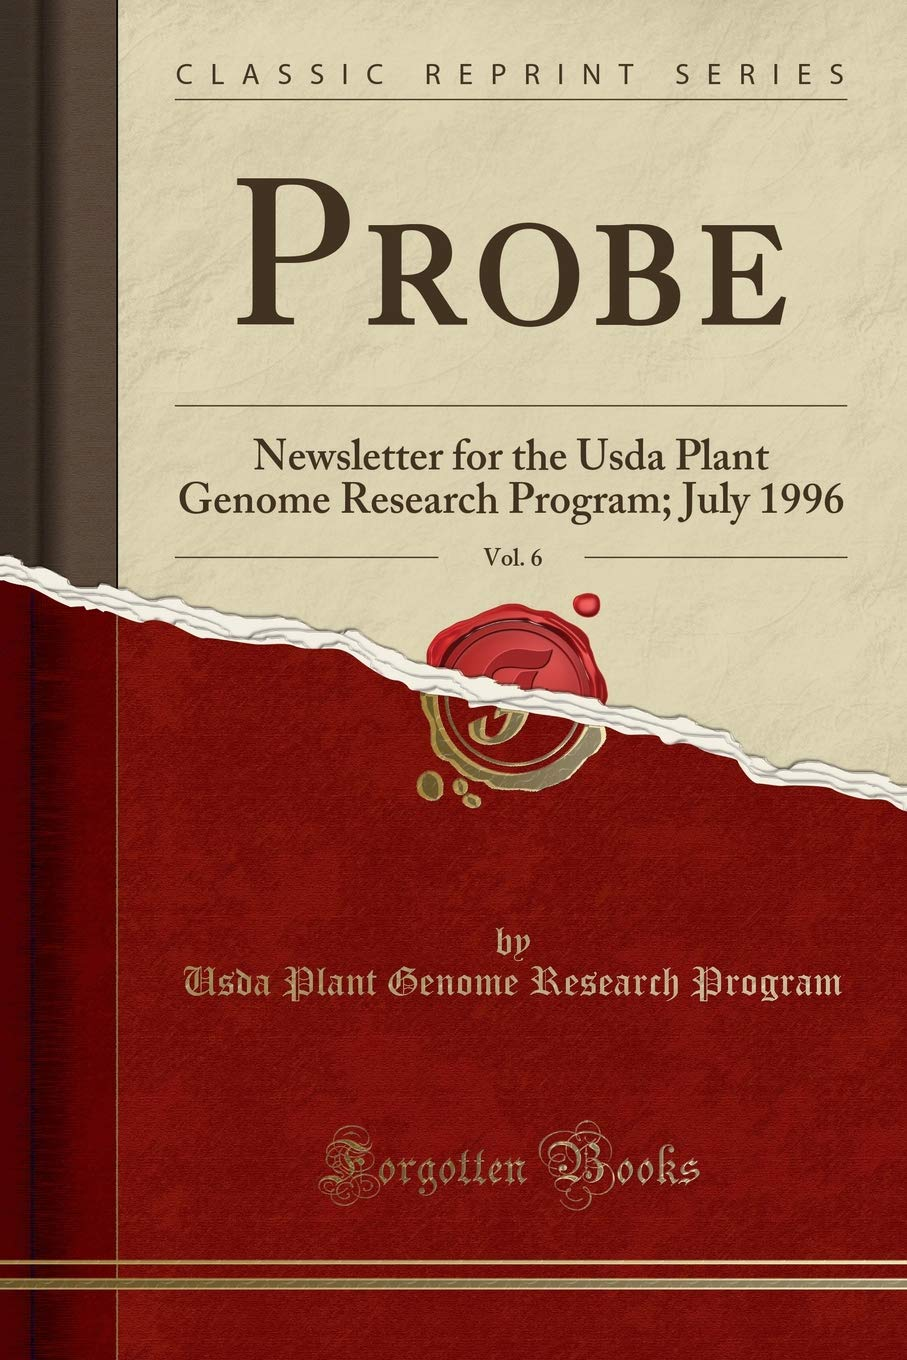 Probe, Vol  6: Newsletter for the USDA Plant Genome Research